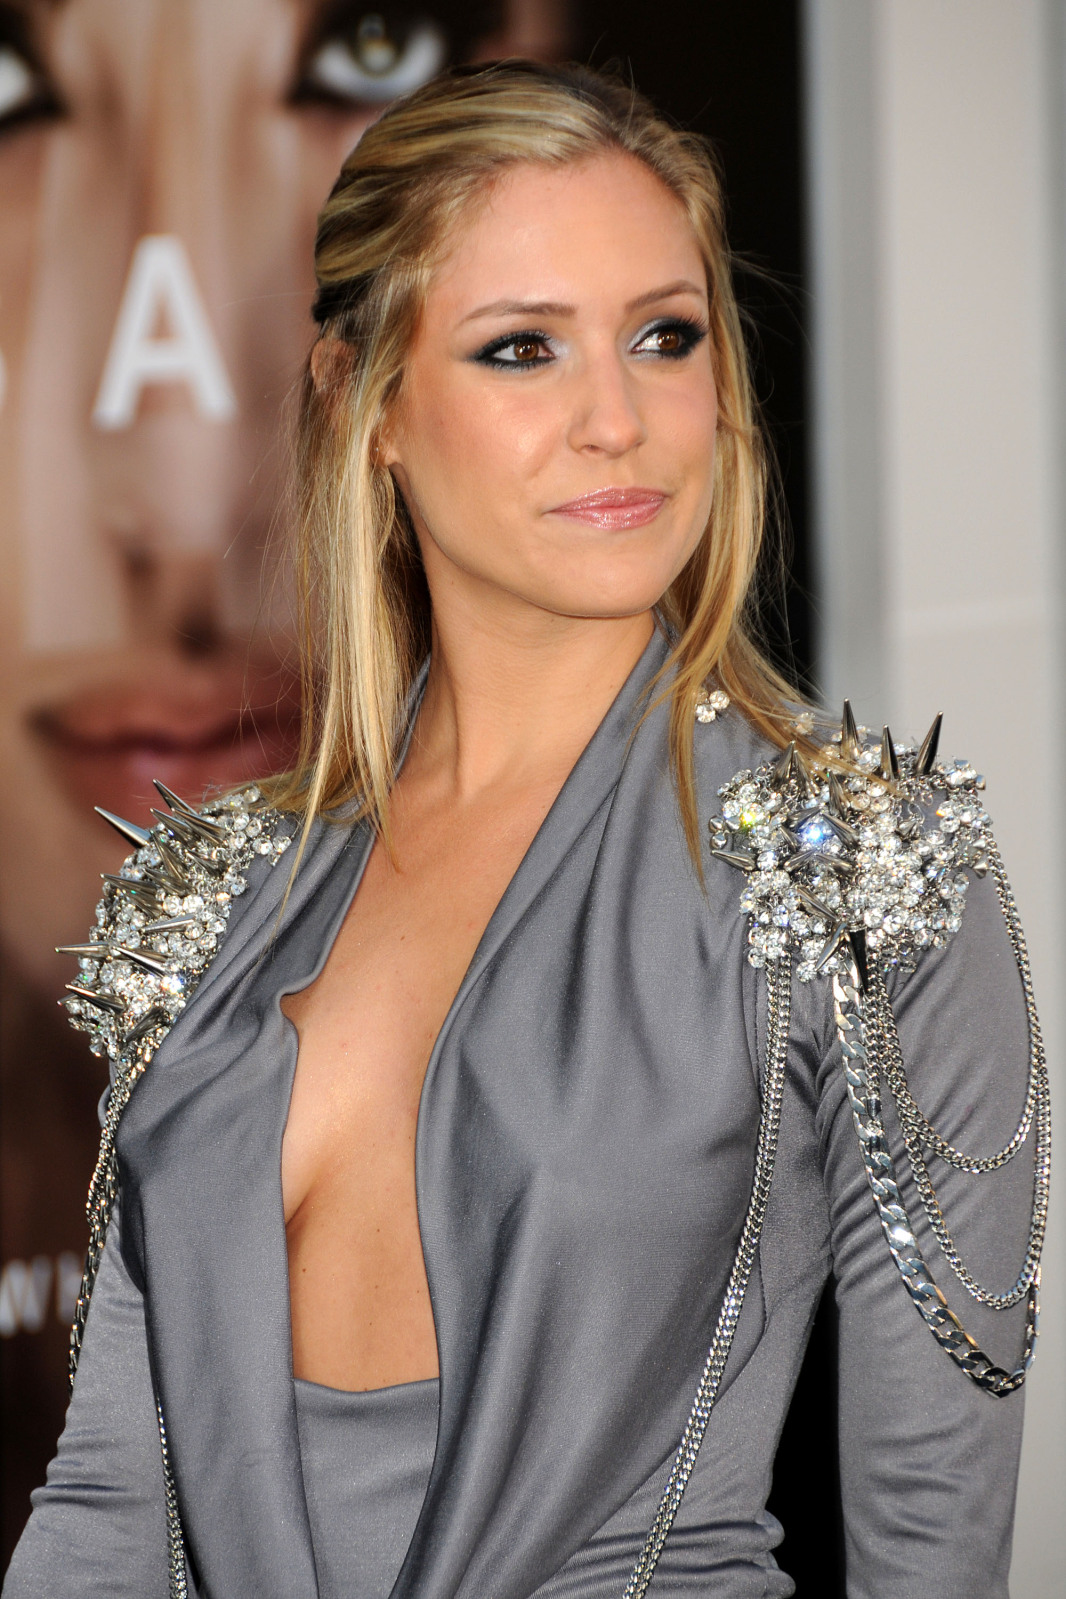 Kristin Cavallari Nice Cleavage Pictures Galleries